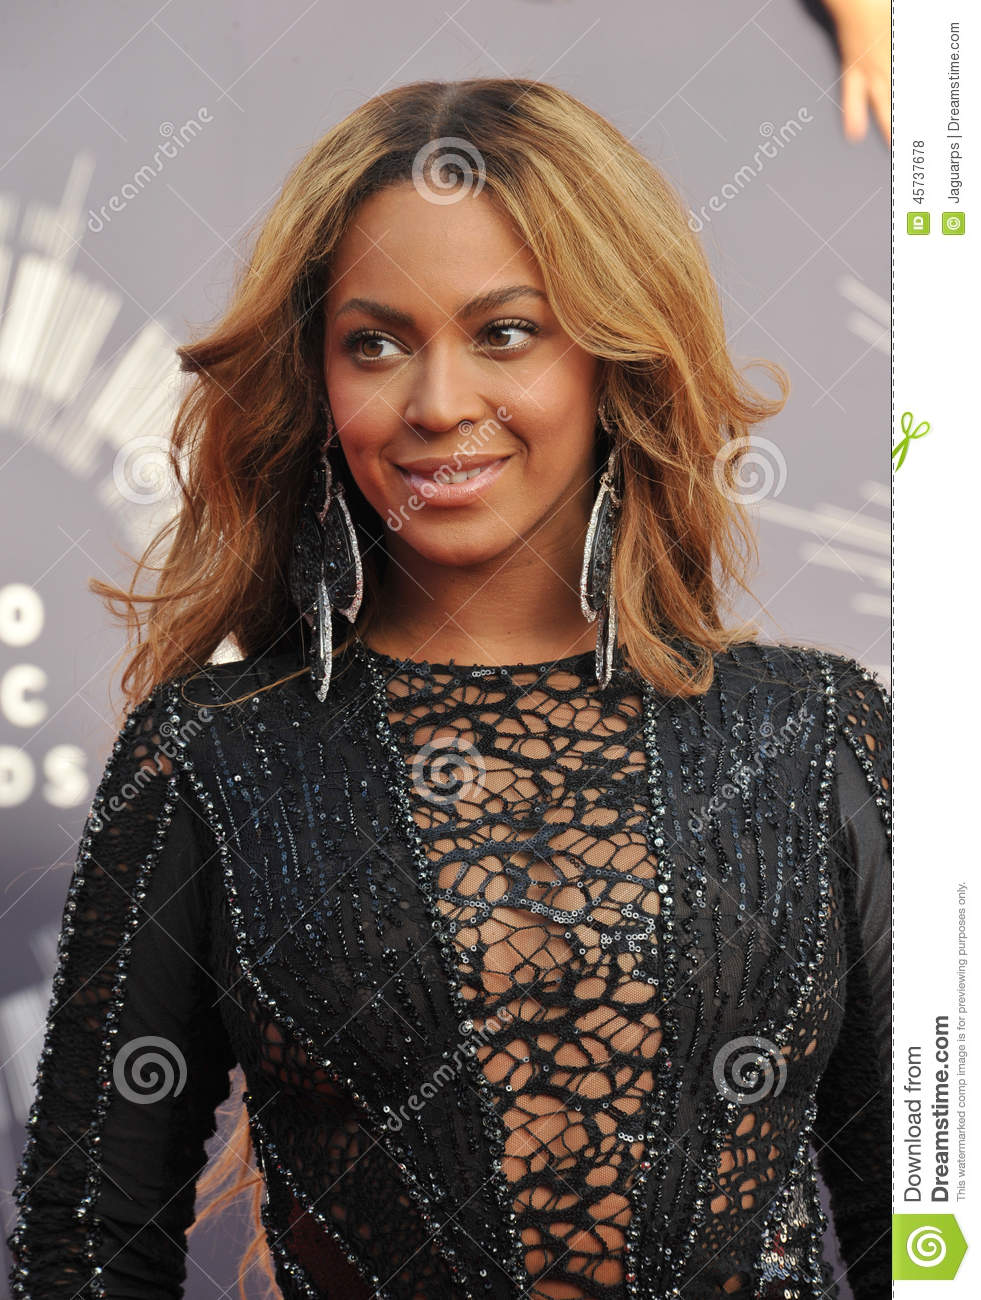 Beyonce Knowles Editorial Stock Photo - Image: 45737678 Beyonce Knowles